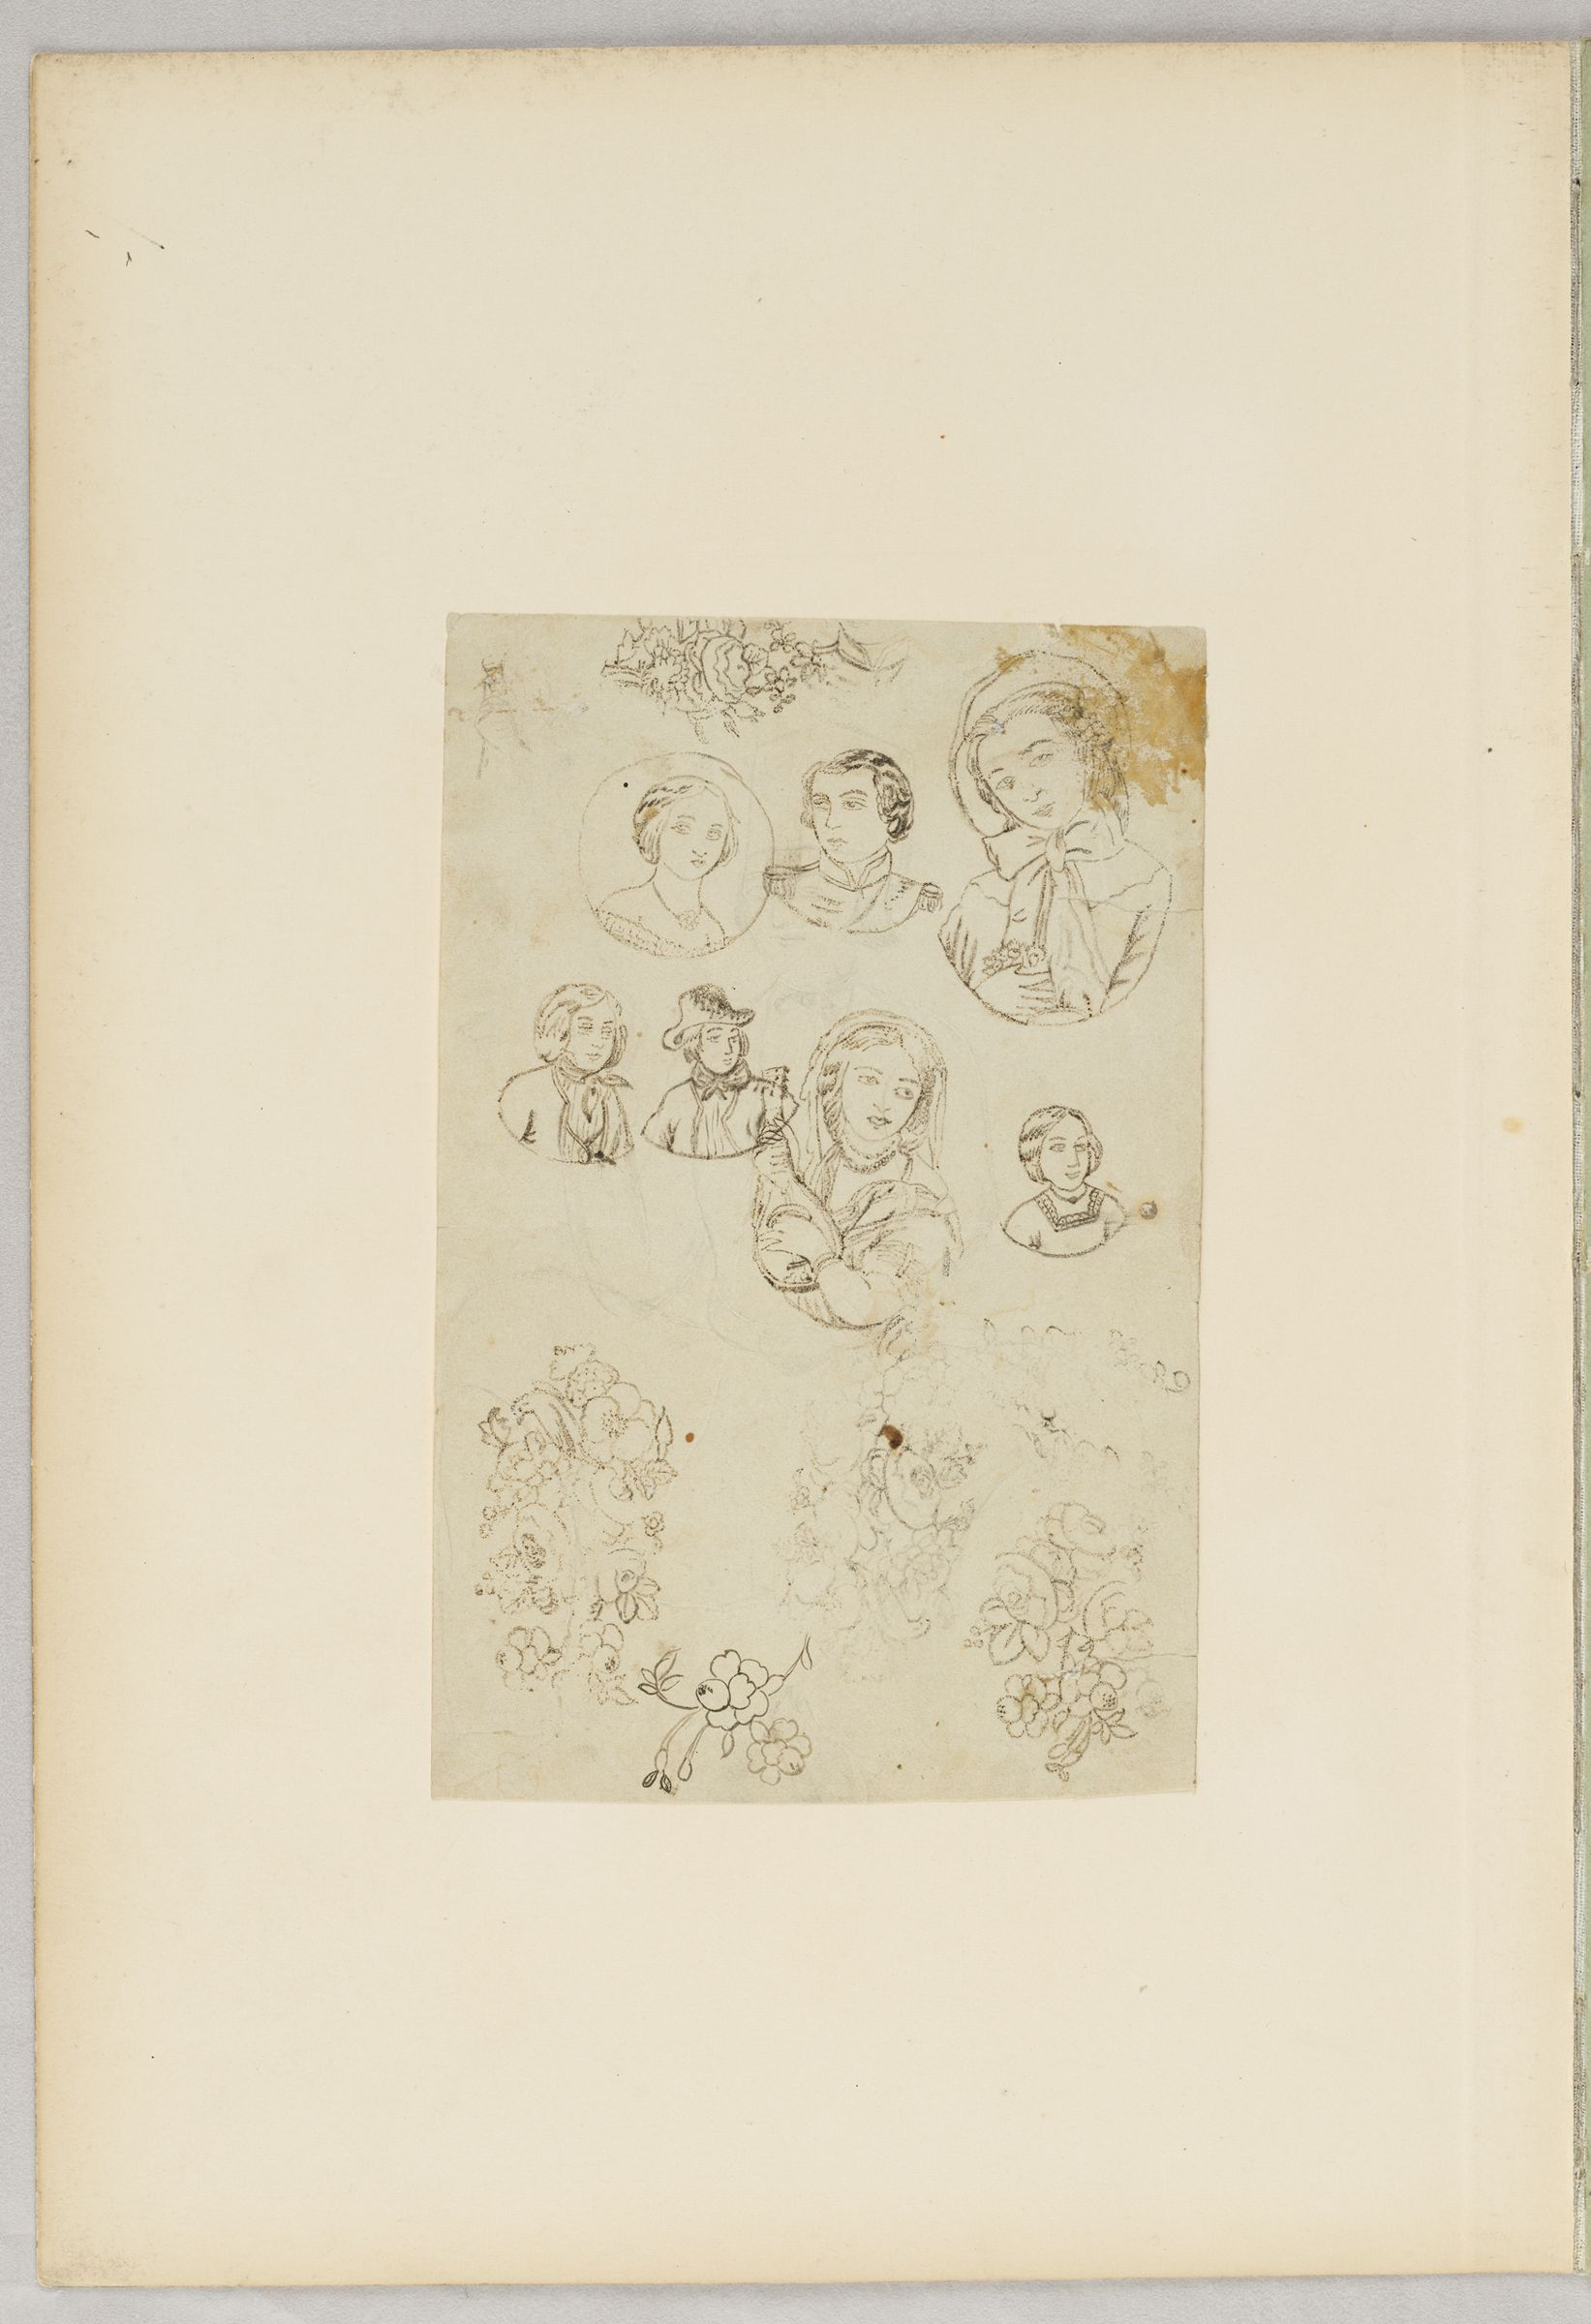 Folio 22 From An Album Of Drawings And Paintings: Sheet Of Portrait Sketches And Flowers (Recto); Two Sheets: Dog And Decorative Frames; Kneeling Couple And Mixed Bouquet (Verso)